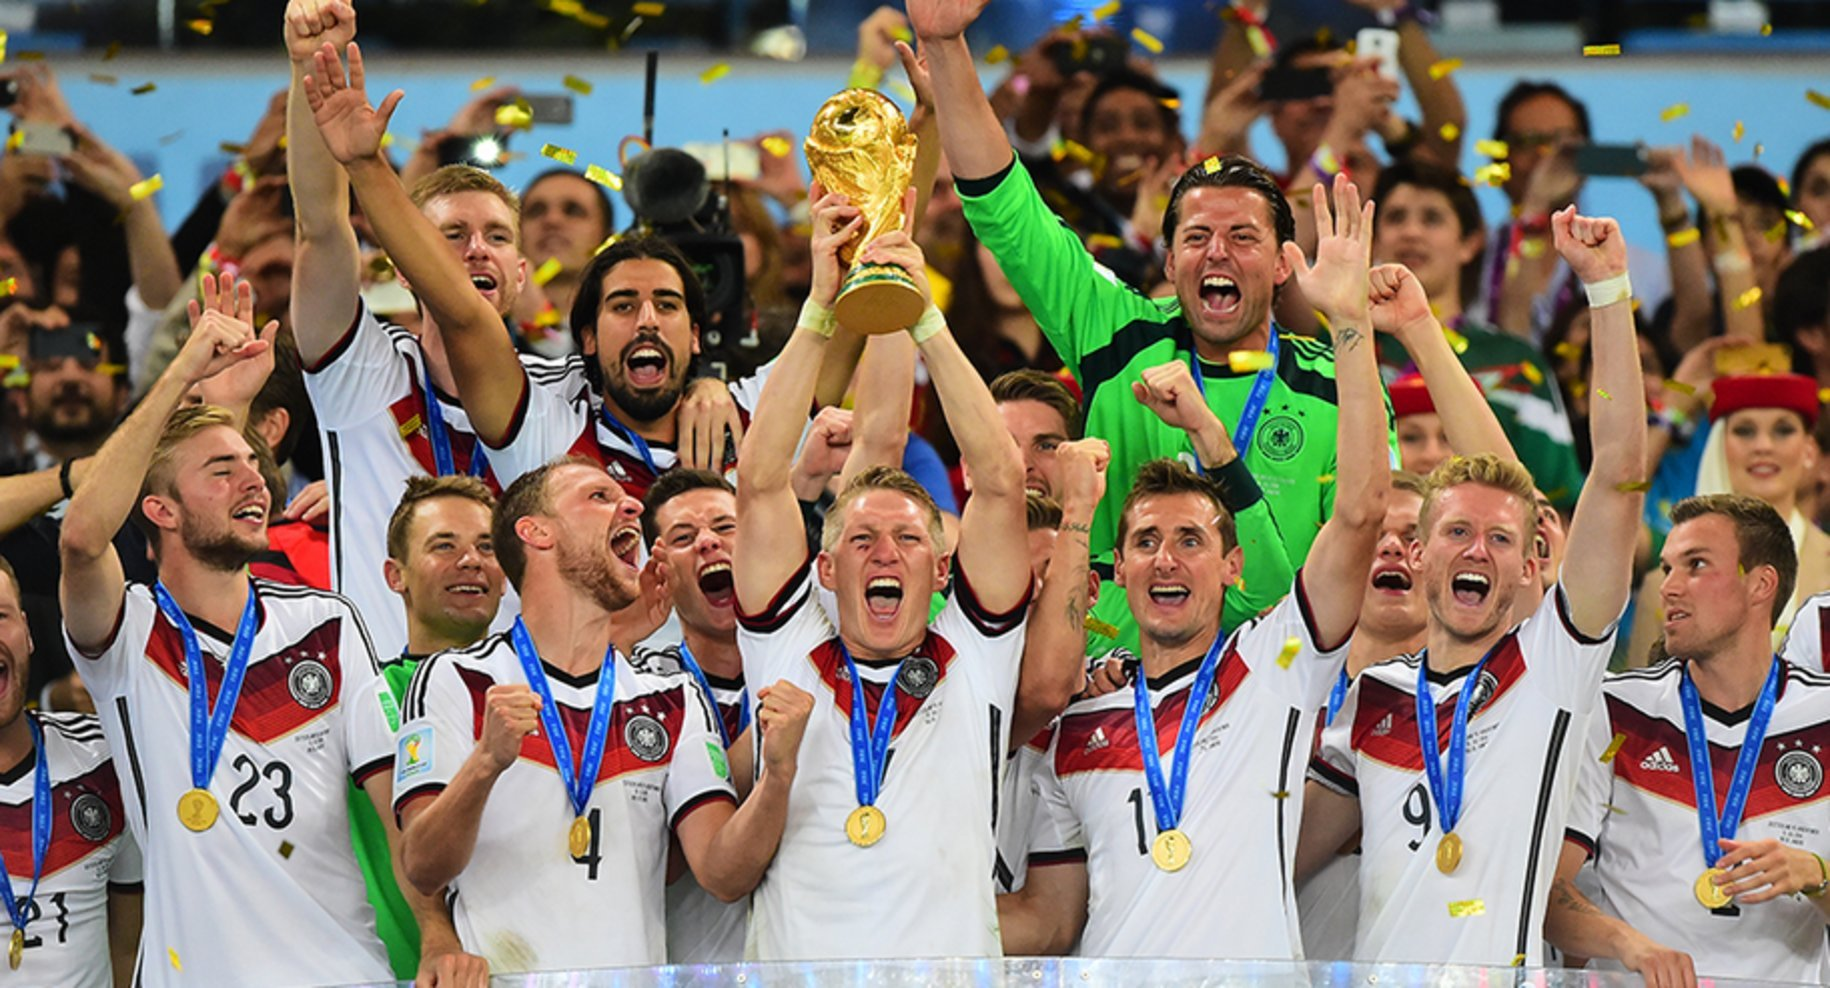 soccer world cup wallpapers high quality download free